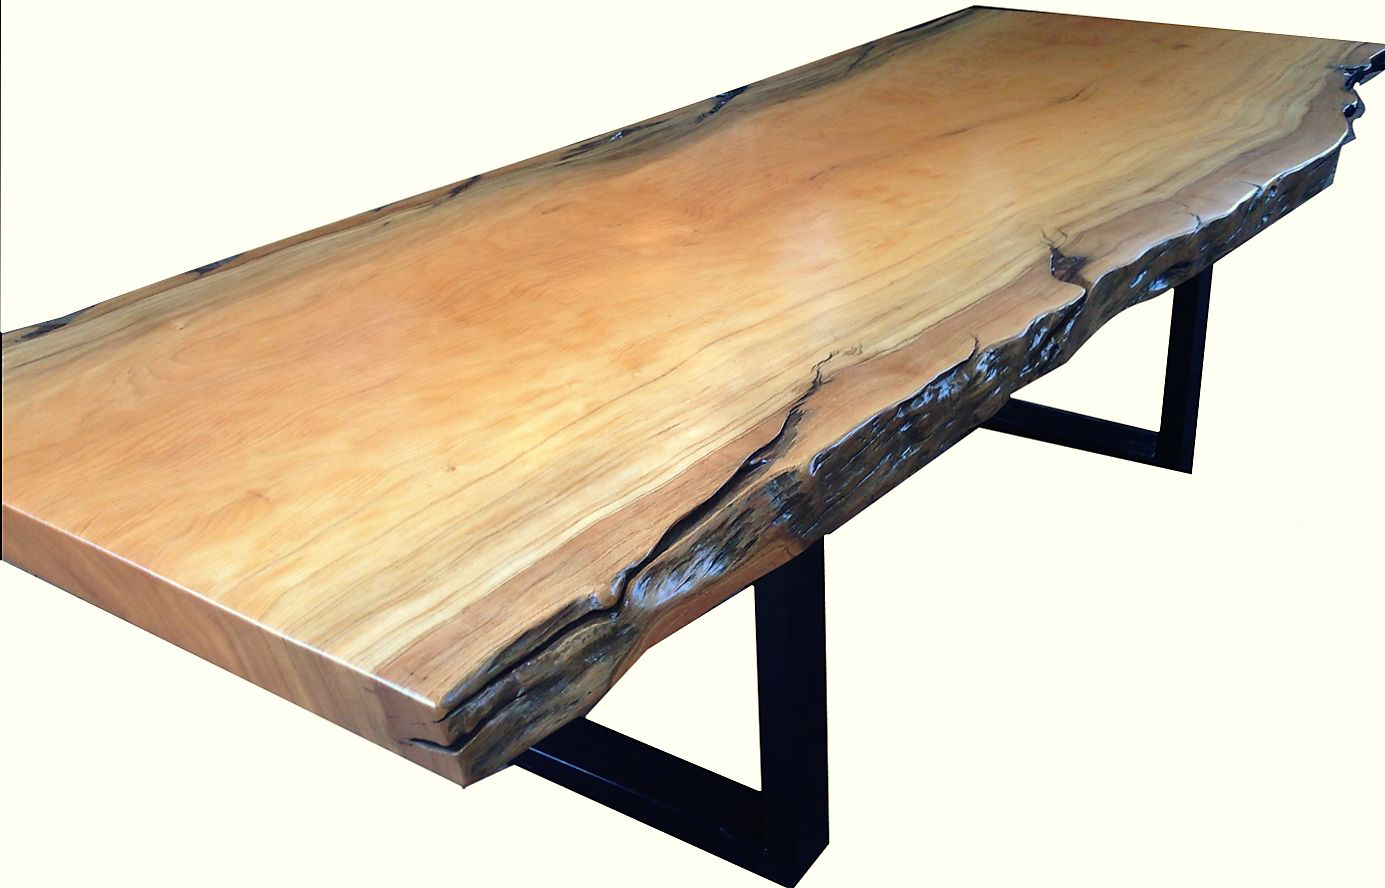 Natural edged wood dining room table phases africa for Wood dining table decor